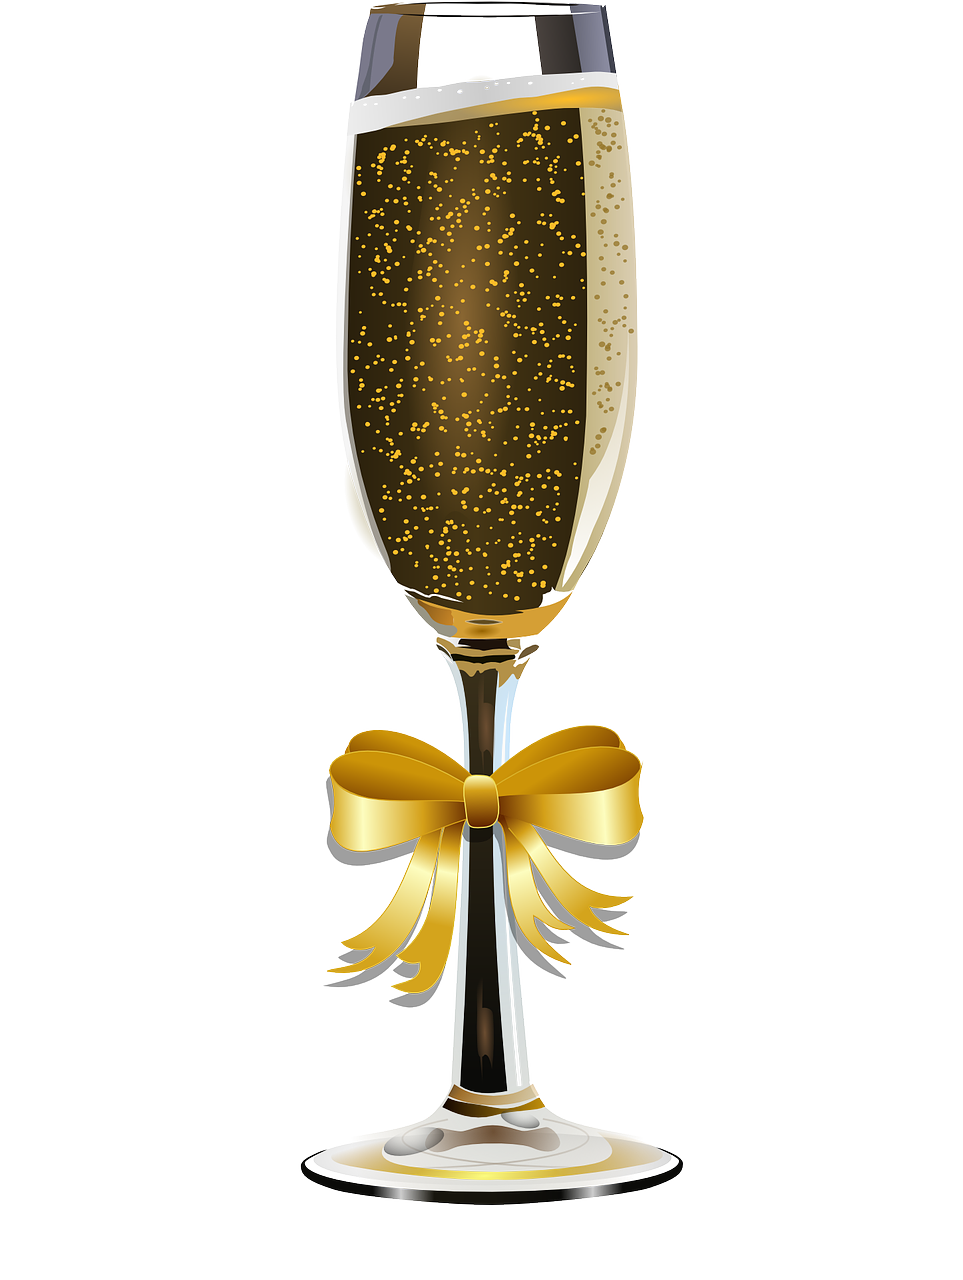 champagne-160865_1280.png